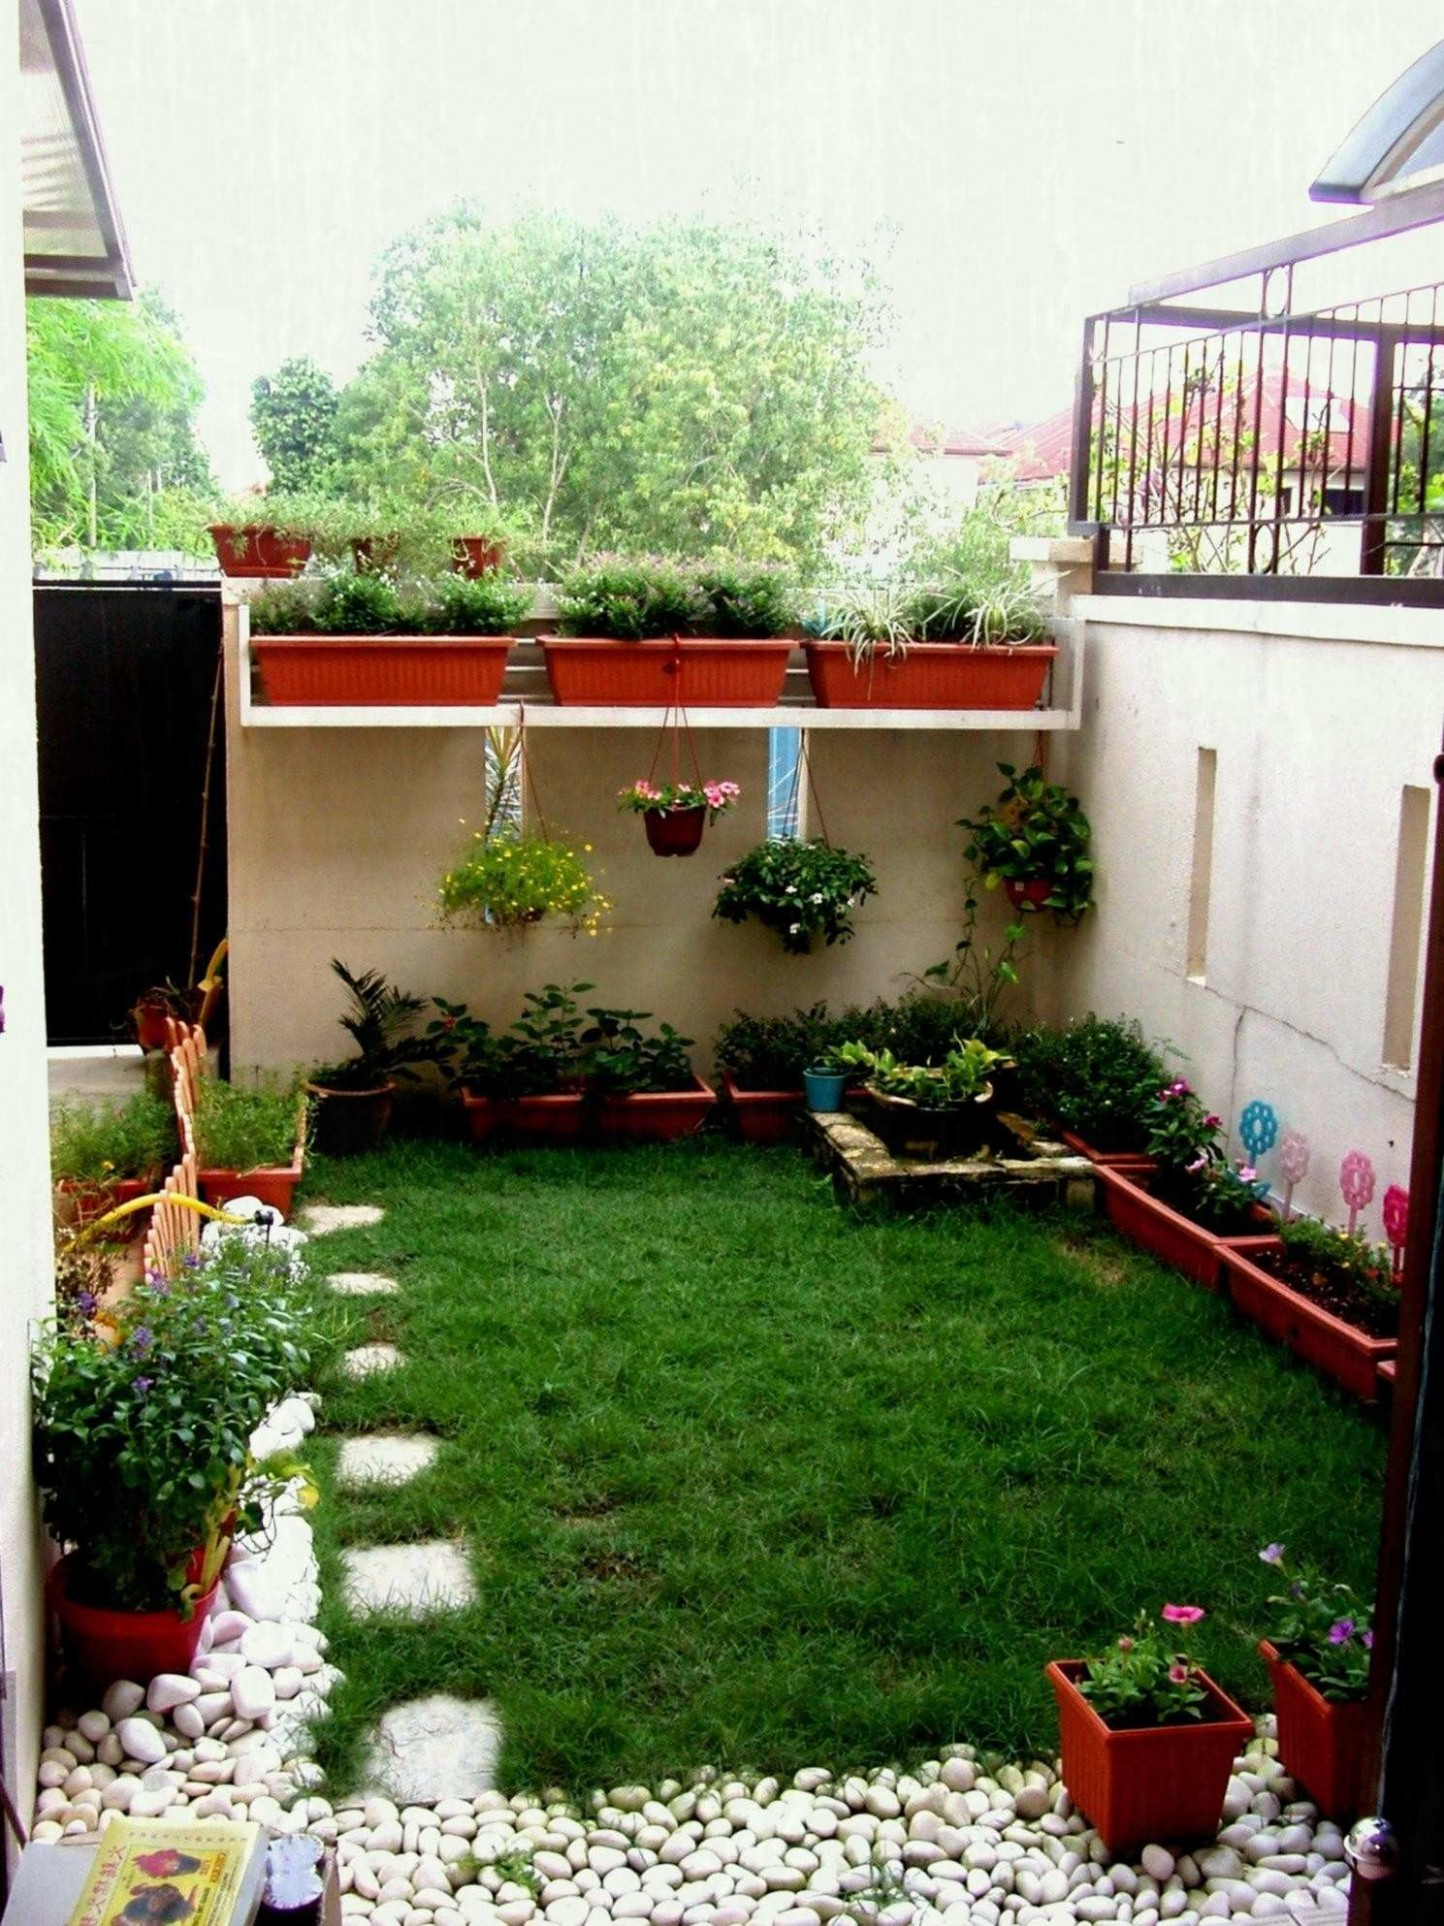 Apartment Patio Garden Ideas Luxury For Small Balcony, 10  - Apartment Yard Design